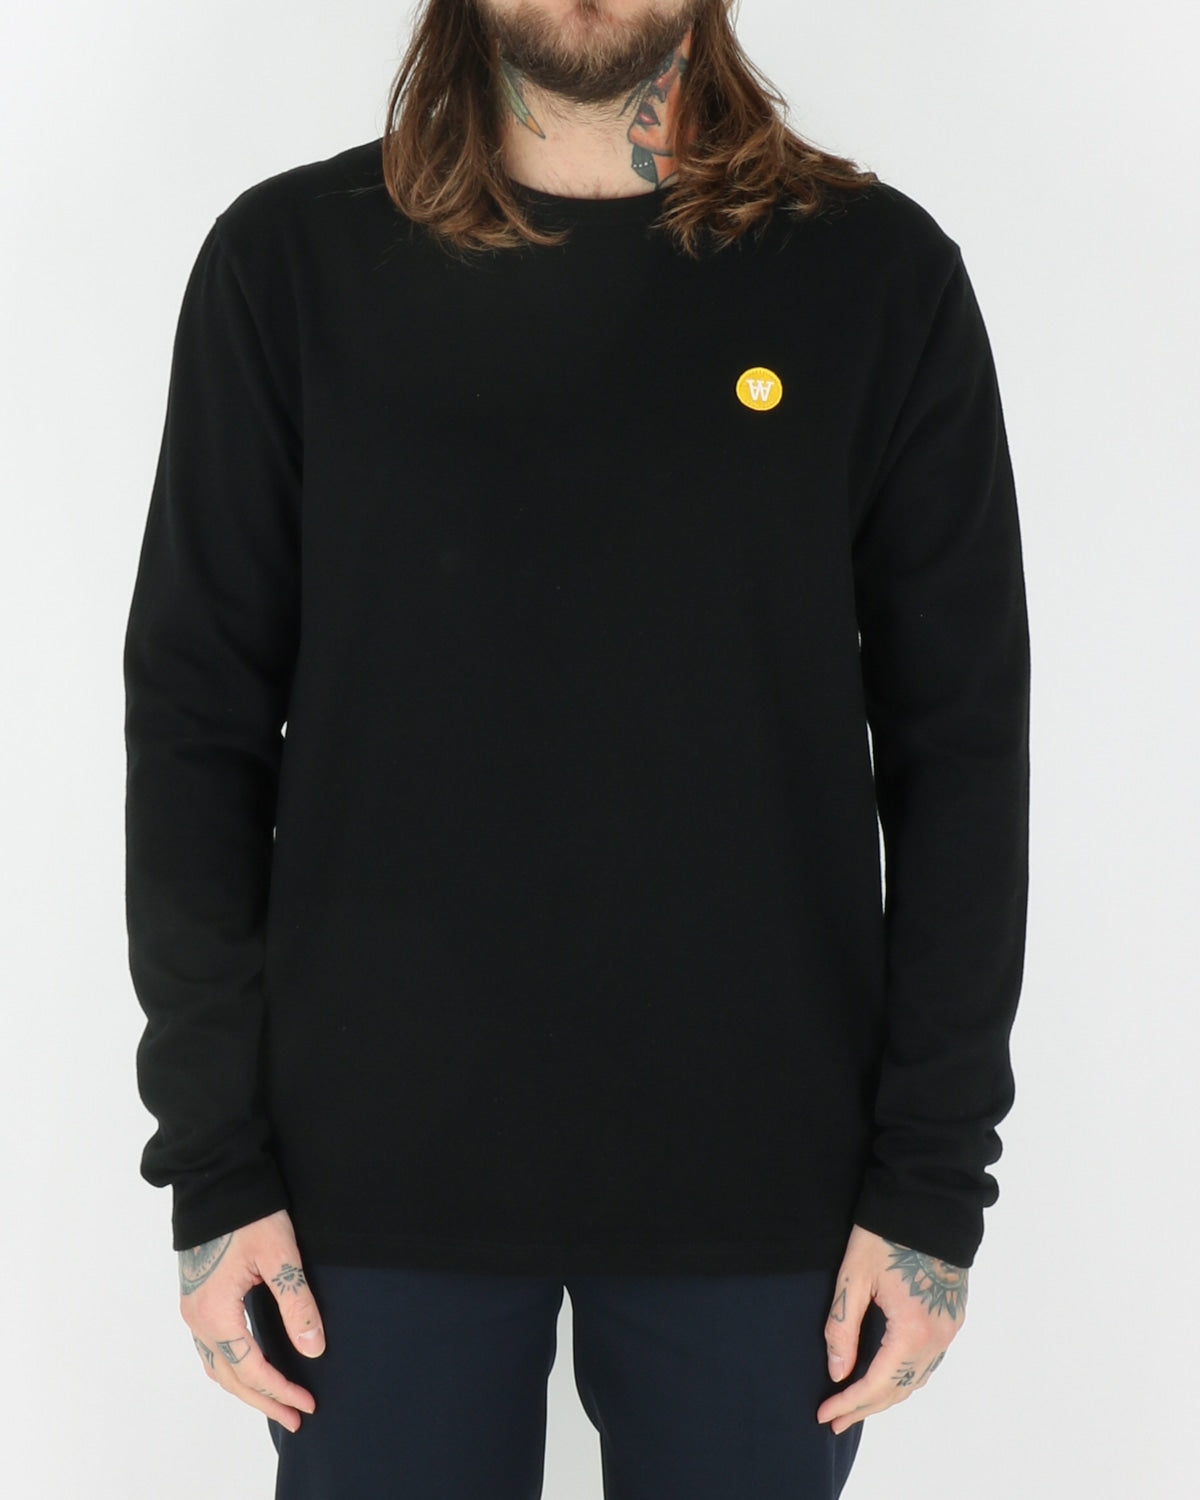 wood wood_mel longsleeve_black_view_1_3